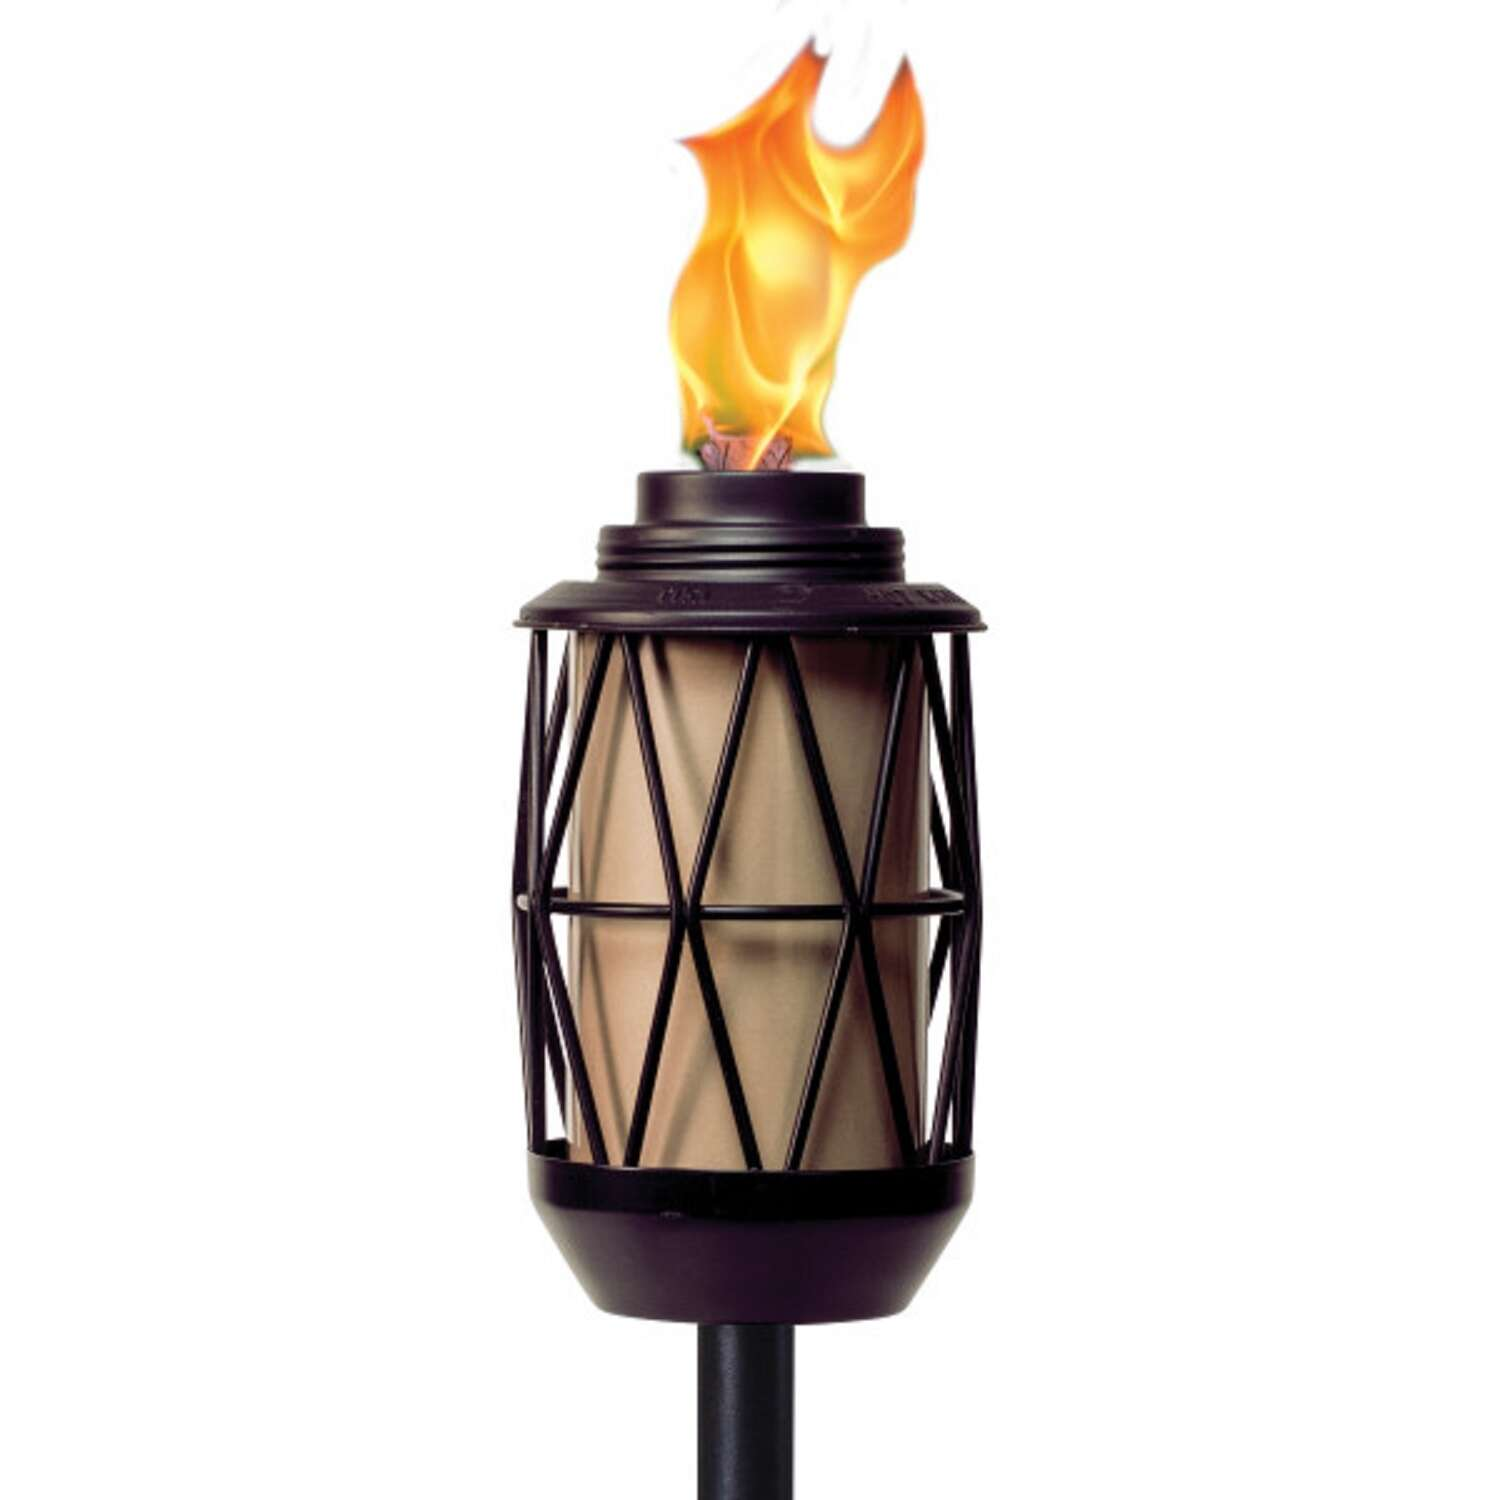 Tiki  BiteFighter  Black  Metal  64.25 in. Garden Torch  1 pc.